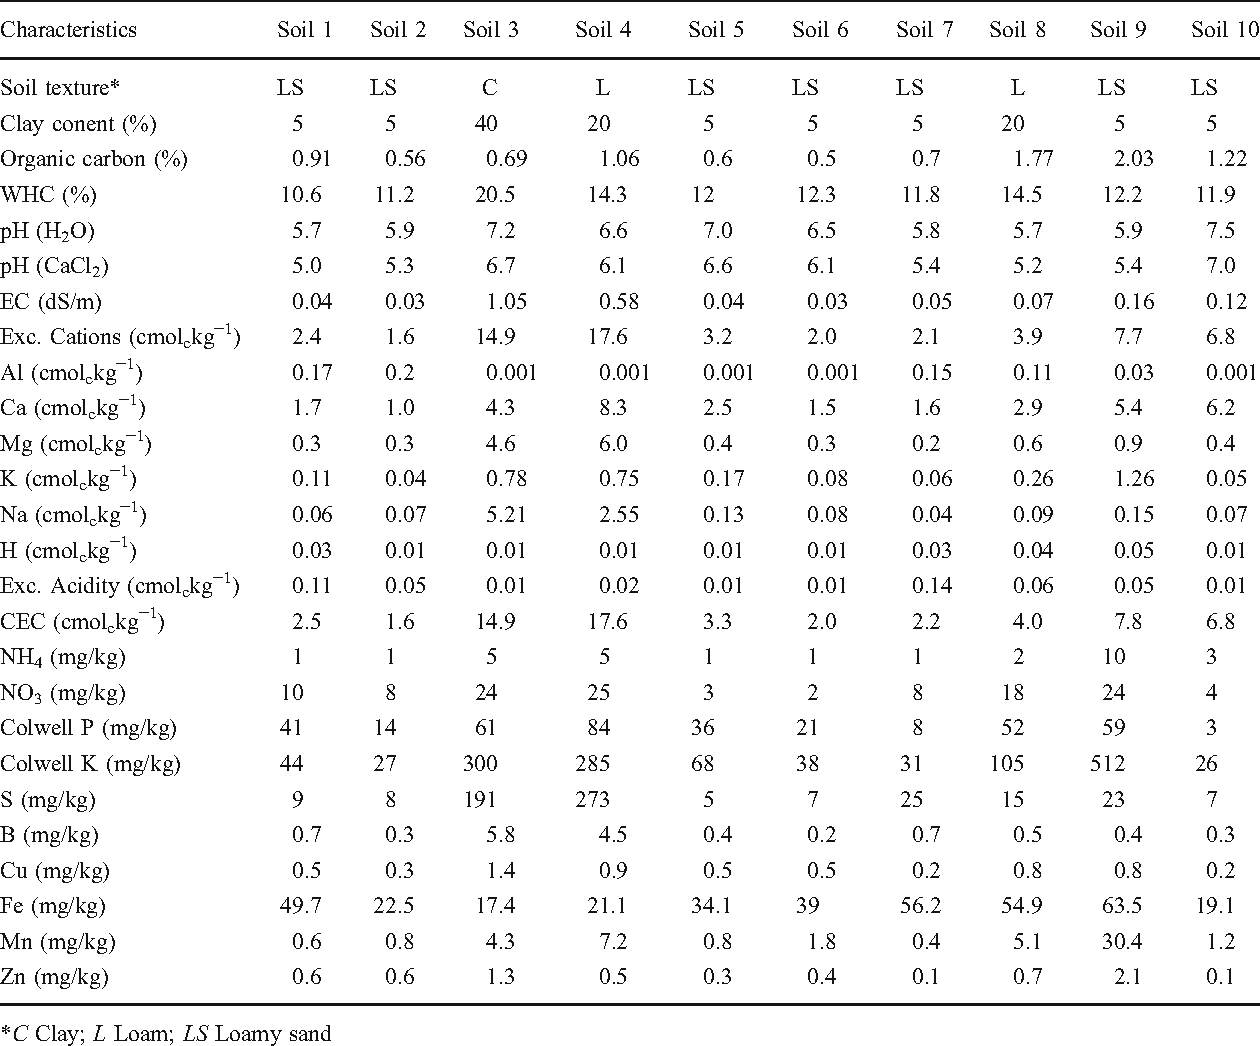 Table 2 Charateristics of 10 soils collected from Western Australia for comparison of the effect of five biochars on seed germination, shoot and root growth of wheat (Experiment 2)